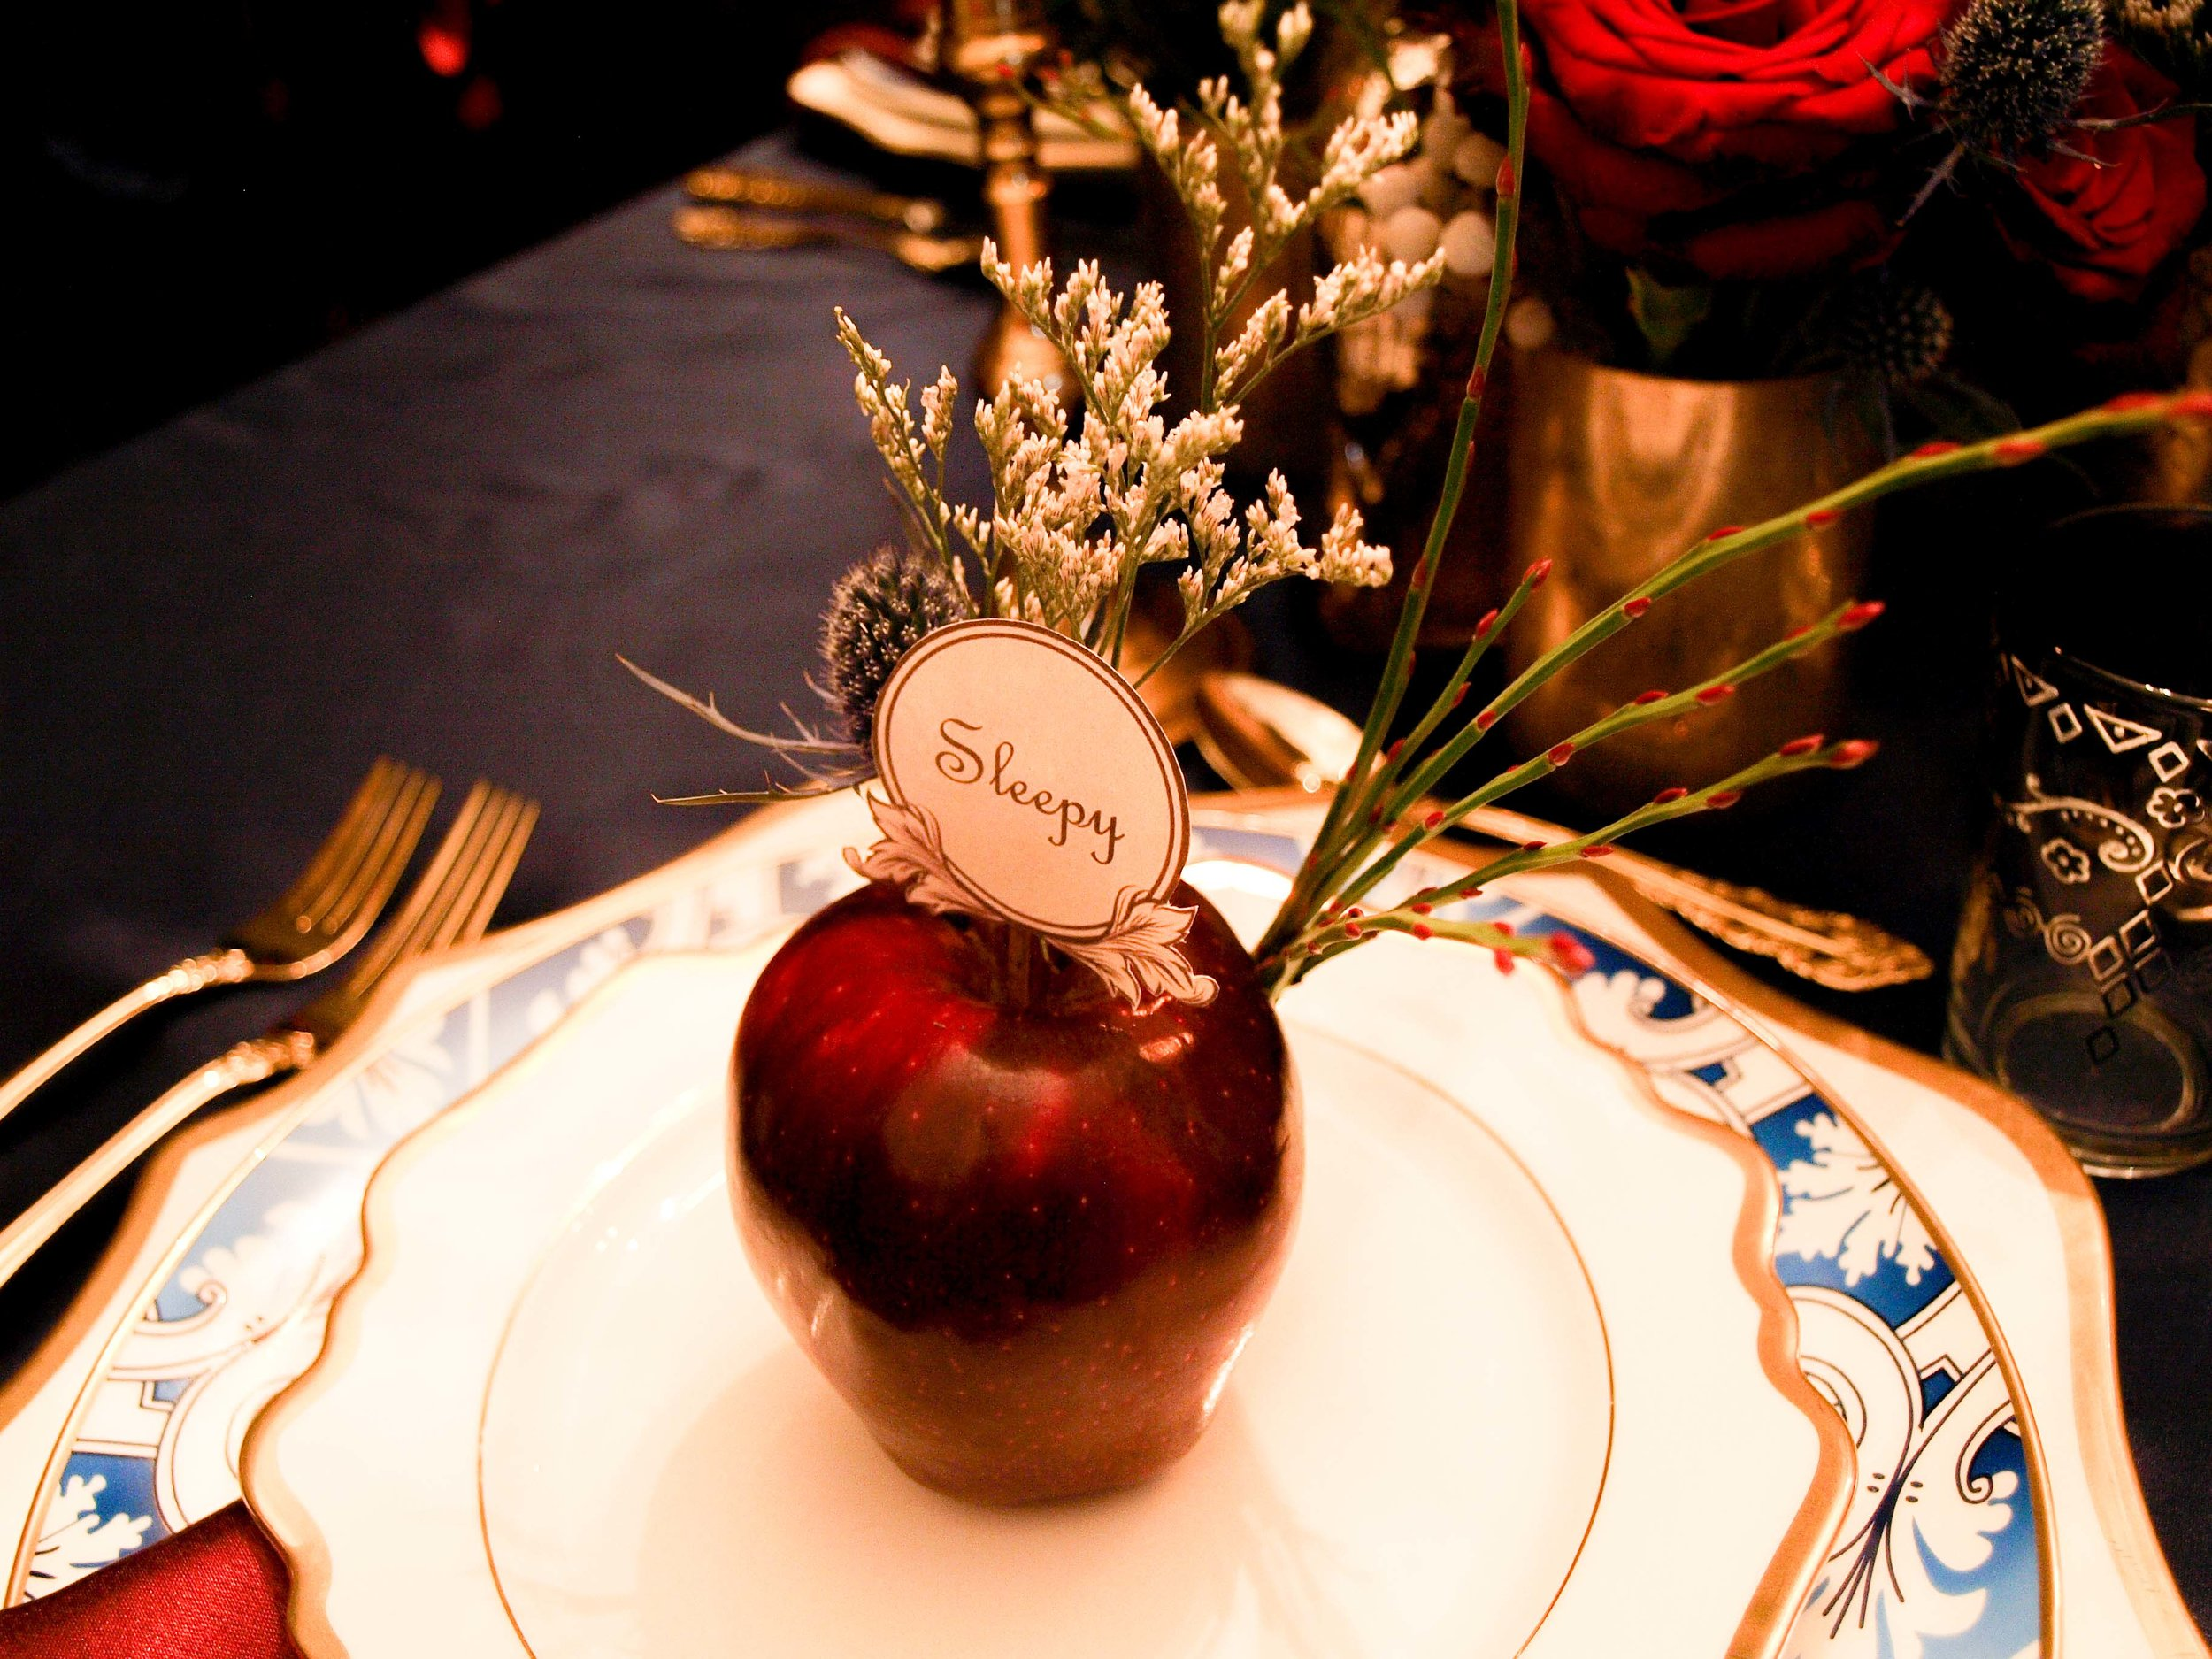 Snow White and the Seven Dwarves Decor and Floral Inspiration - Enchanted Dark Forest Tablescape Red Delicious Apple Place Card - Historia Wedding and Event Planning